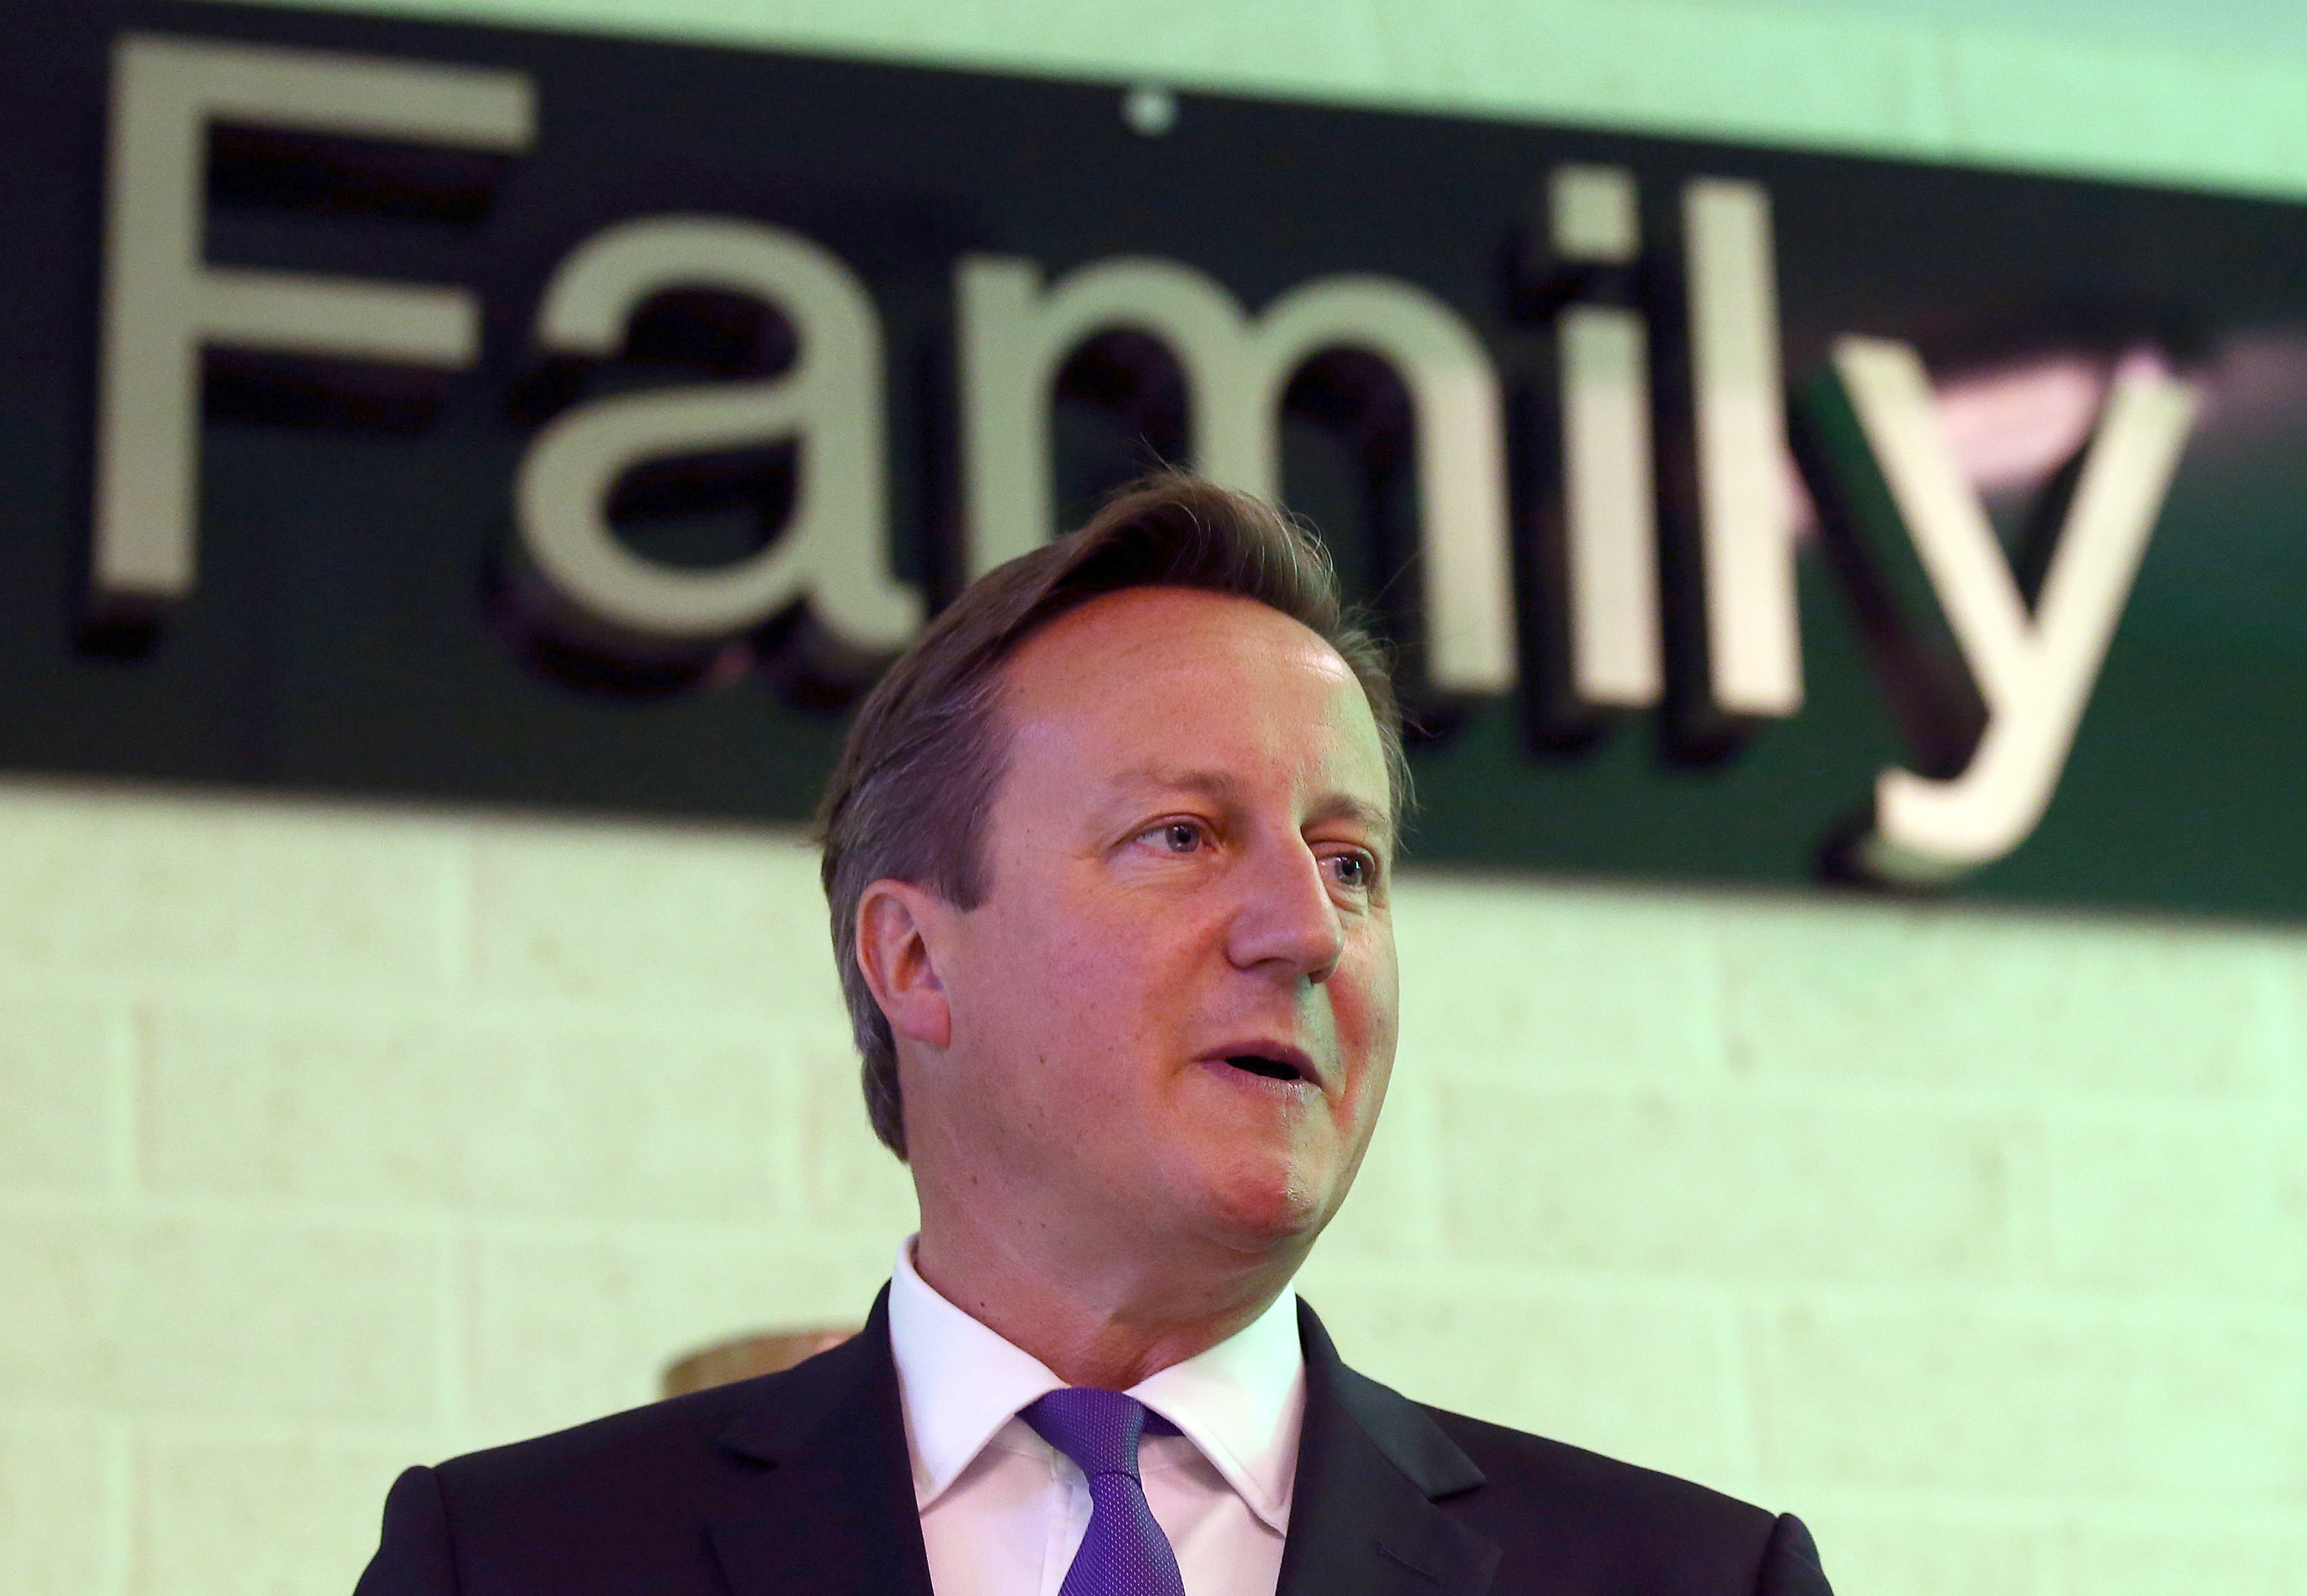 David Cameron speaks during a visit to Edinburgh, 10 September [Reuters]